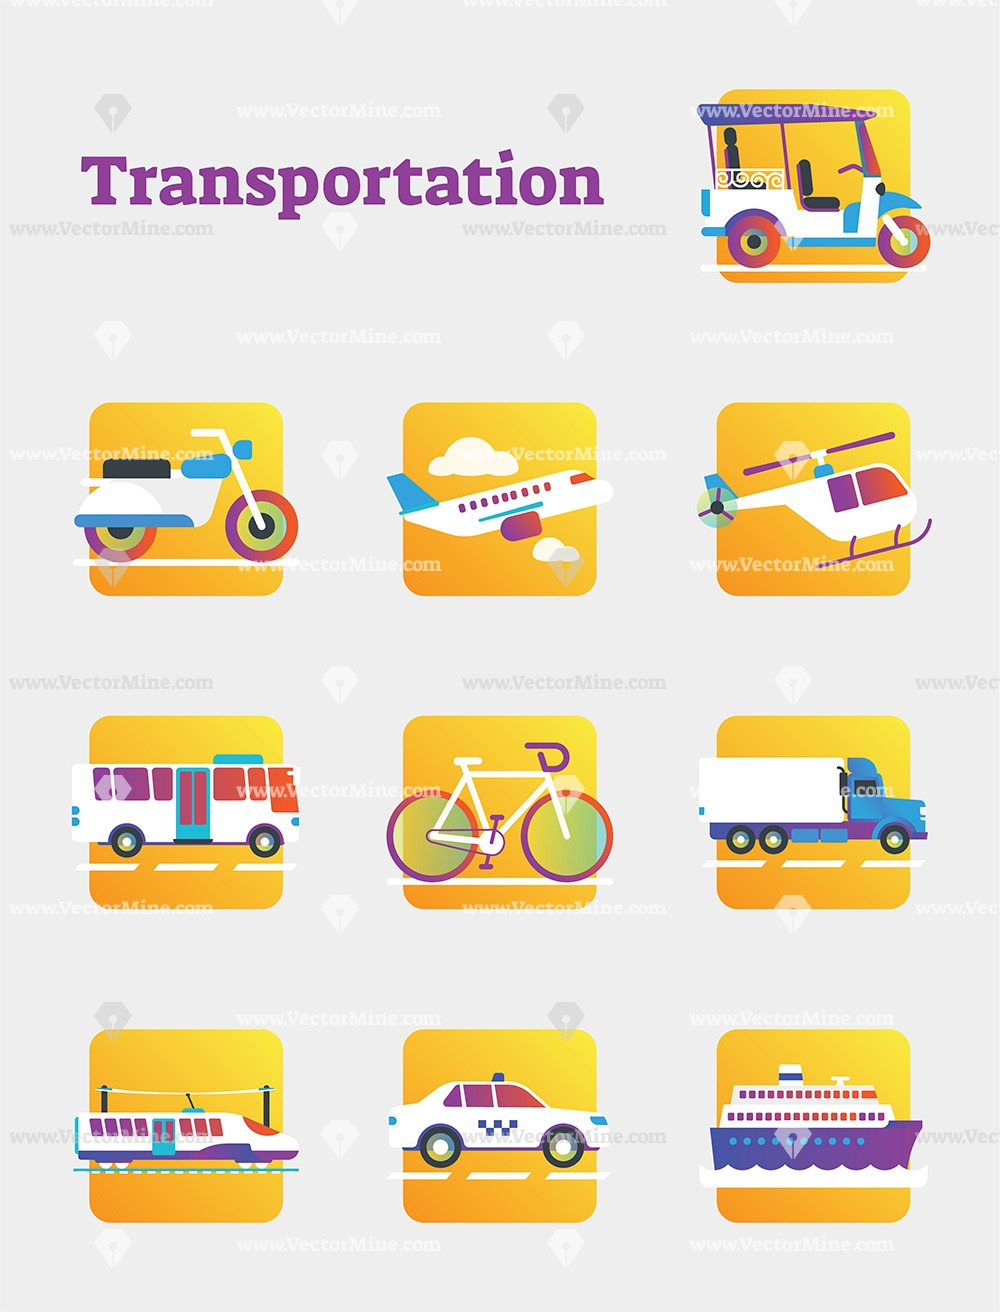 Free business and travel transportation vector icons collection